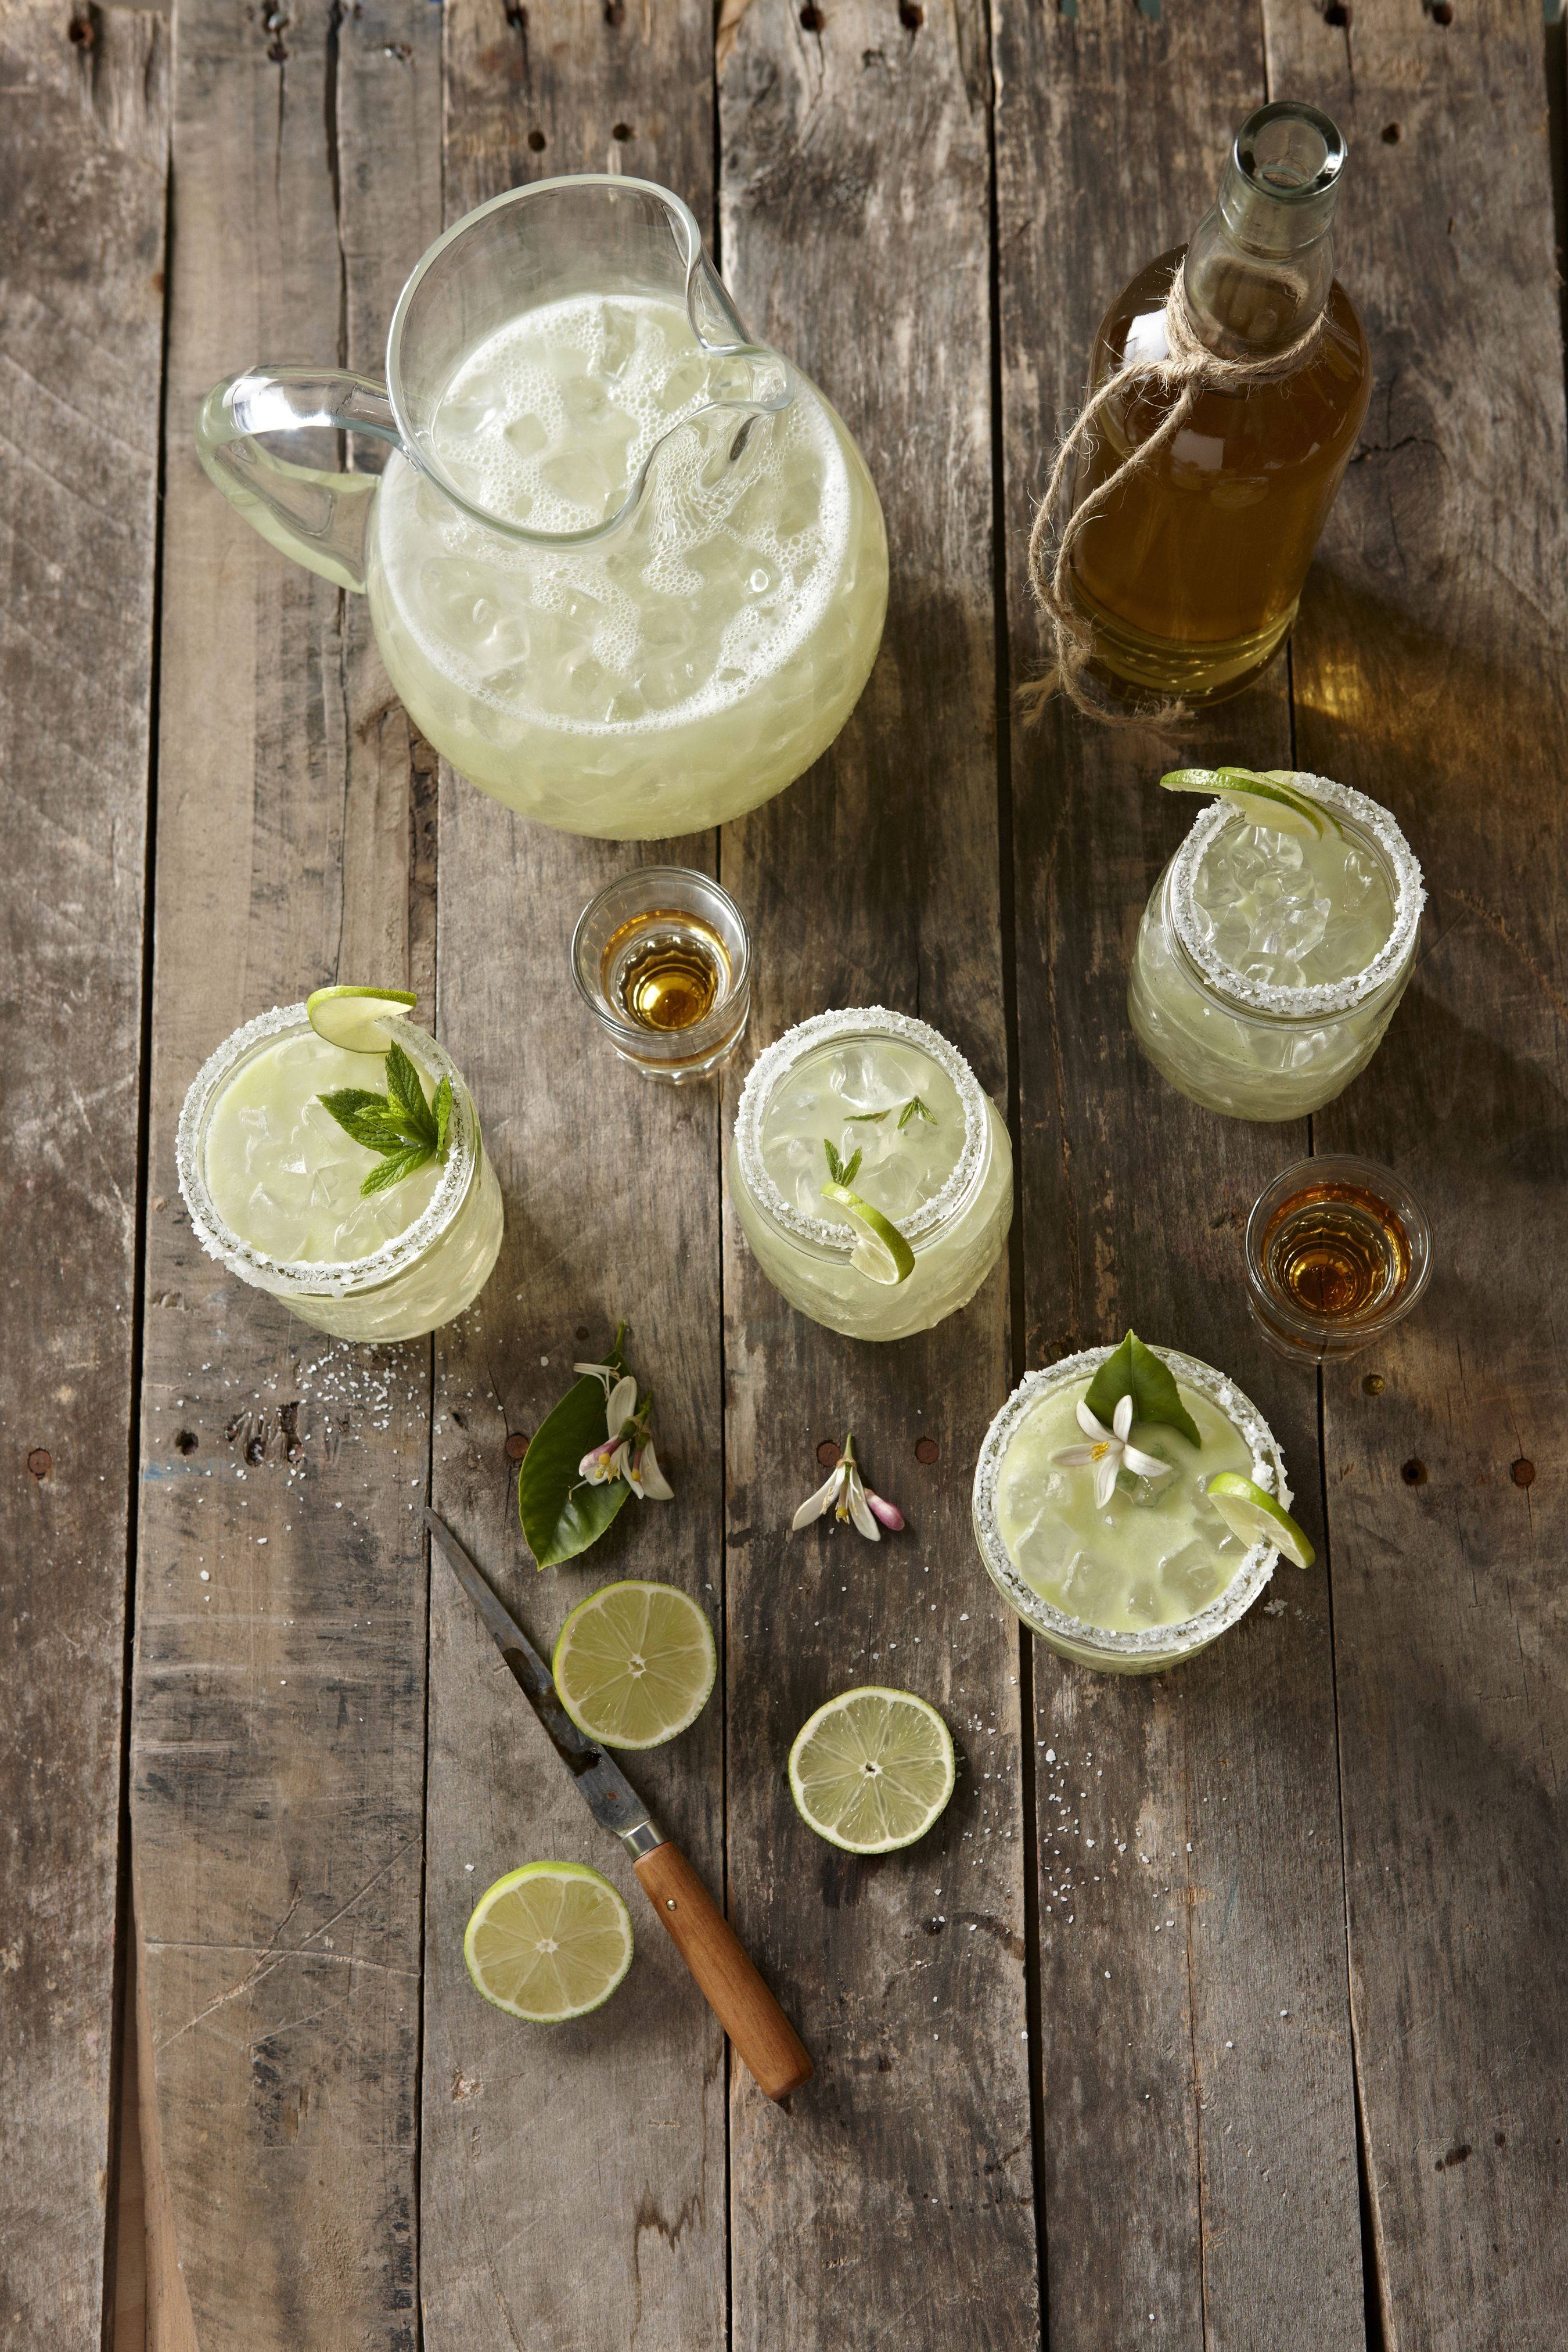 "<p>Like a <a href=""http://www.simplysated.com/limoncello-margaritas/"" target=""_blank"">sweet and salty</a>, yet super boozy lemonade. </p><p><strong>Ingredients: </strong></p><p><strong></strong>2 oz. Frozen Limeade Concentrate or Lemonade Concentrate</p><p>2 oz. Water</p><p>2 oz. Triple Sec</p><p>2 oz. Silver Tequila</p><p>2 oz. Limoncello</p><p>½ oz. Agave Nectar</p><p>1 Lemon- zest, Yellow Coarse Sugar, and Margarita Salt for the rim</p><p>2-3 cups Crushed Ice</p><p>Lemon Slices</p><p><strong>Directions: </strong></p><p><span></span>Combine coarse sugar, margarita salt, and lemon zest in a shallow bowl. Rub the rim of a cocktail glass with a half slice of lemon. Turn the lemon-rubbed glass upside down and dip the rim into the salt mixture. Set the glass upright to let dry a couple of minutes. Pour crushed ice into a cocktail shaker. Pour all drink ingredients over the ice, tightly cover, and shake for 30 seconds. Pour into prepared glasses. </p>"